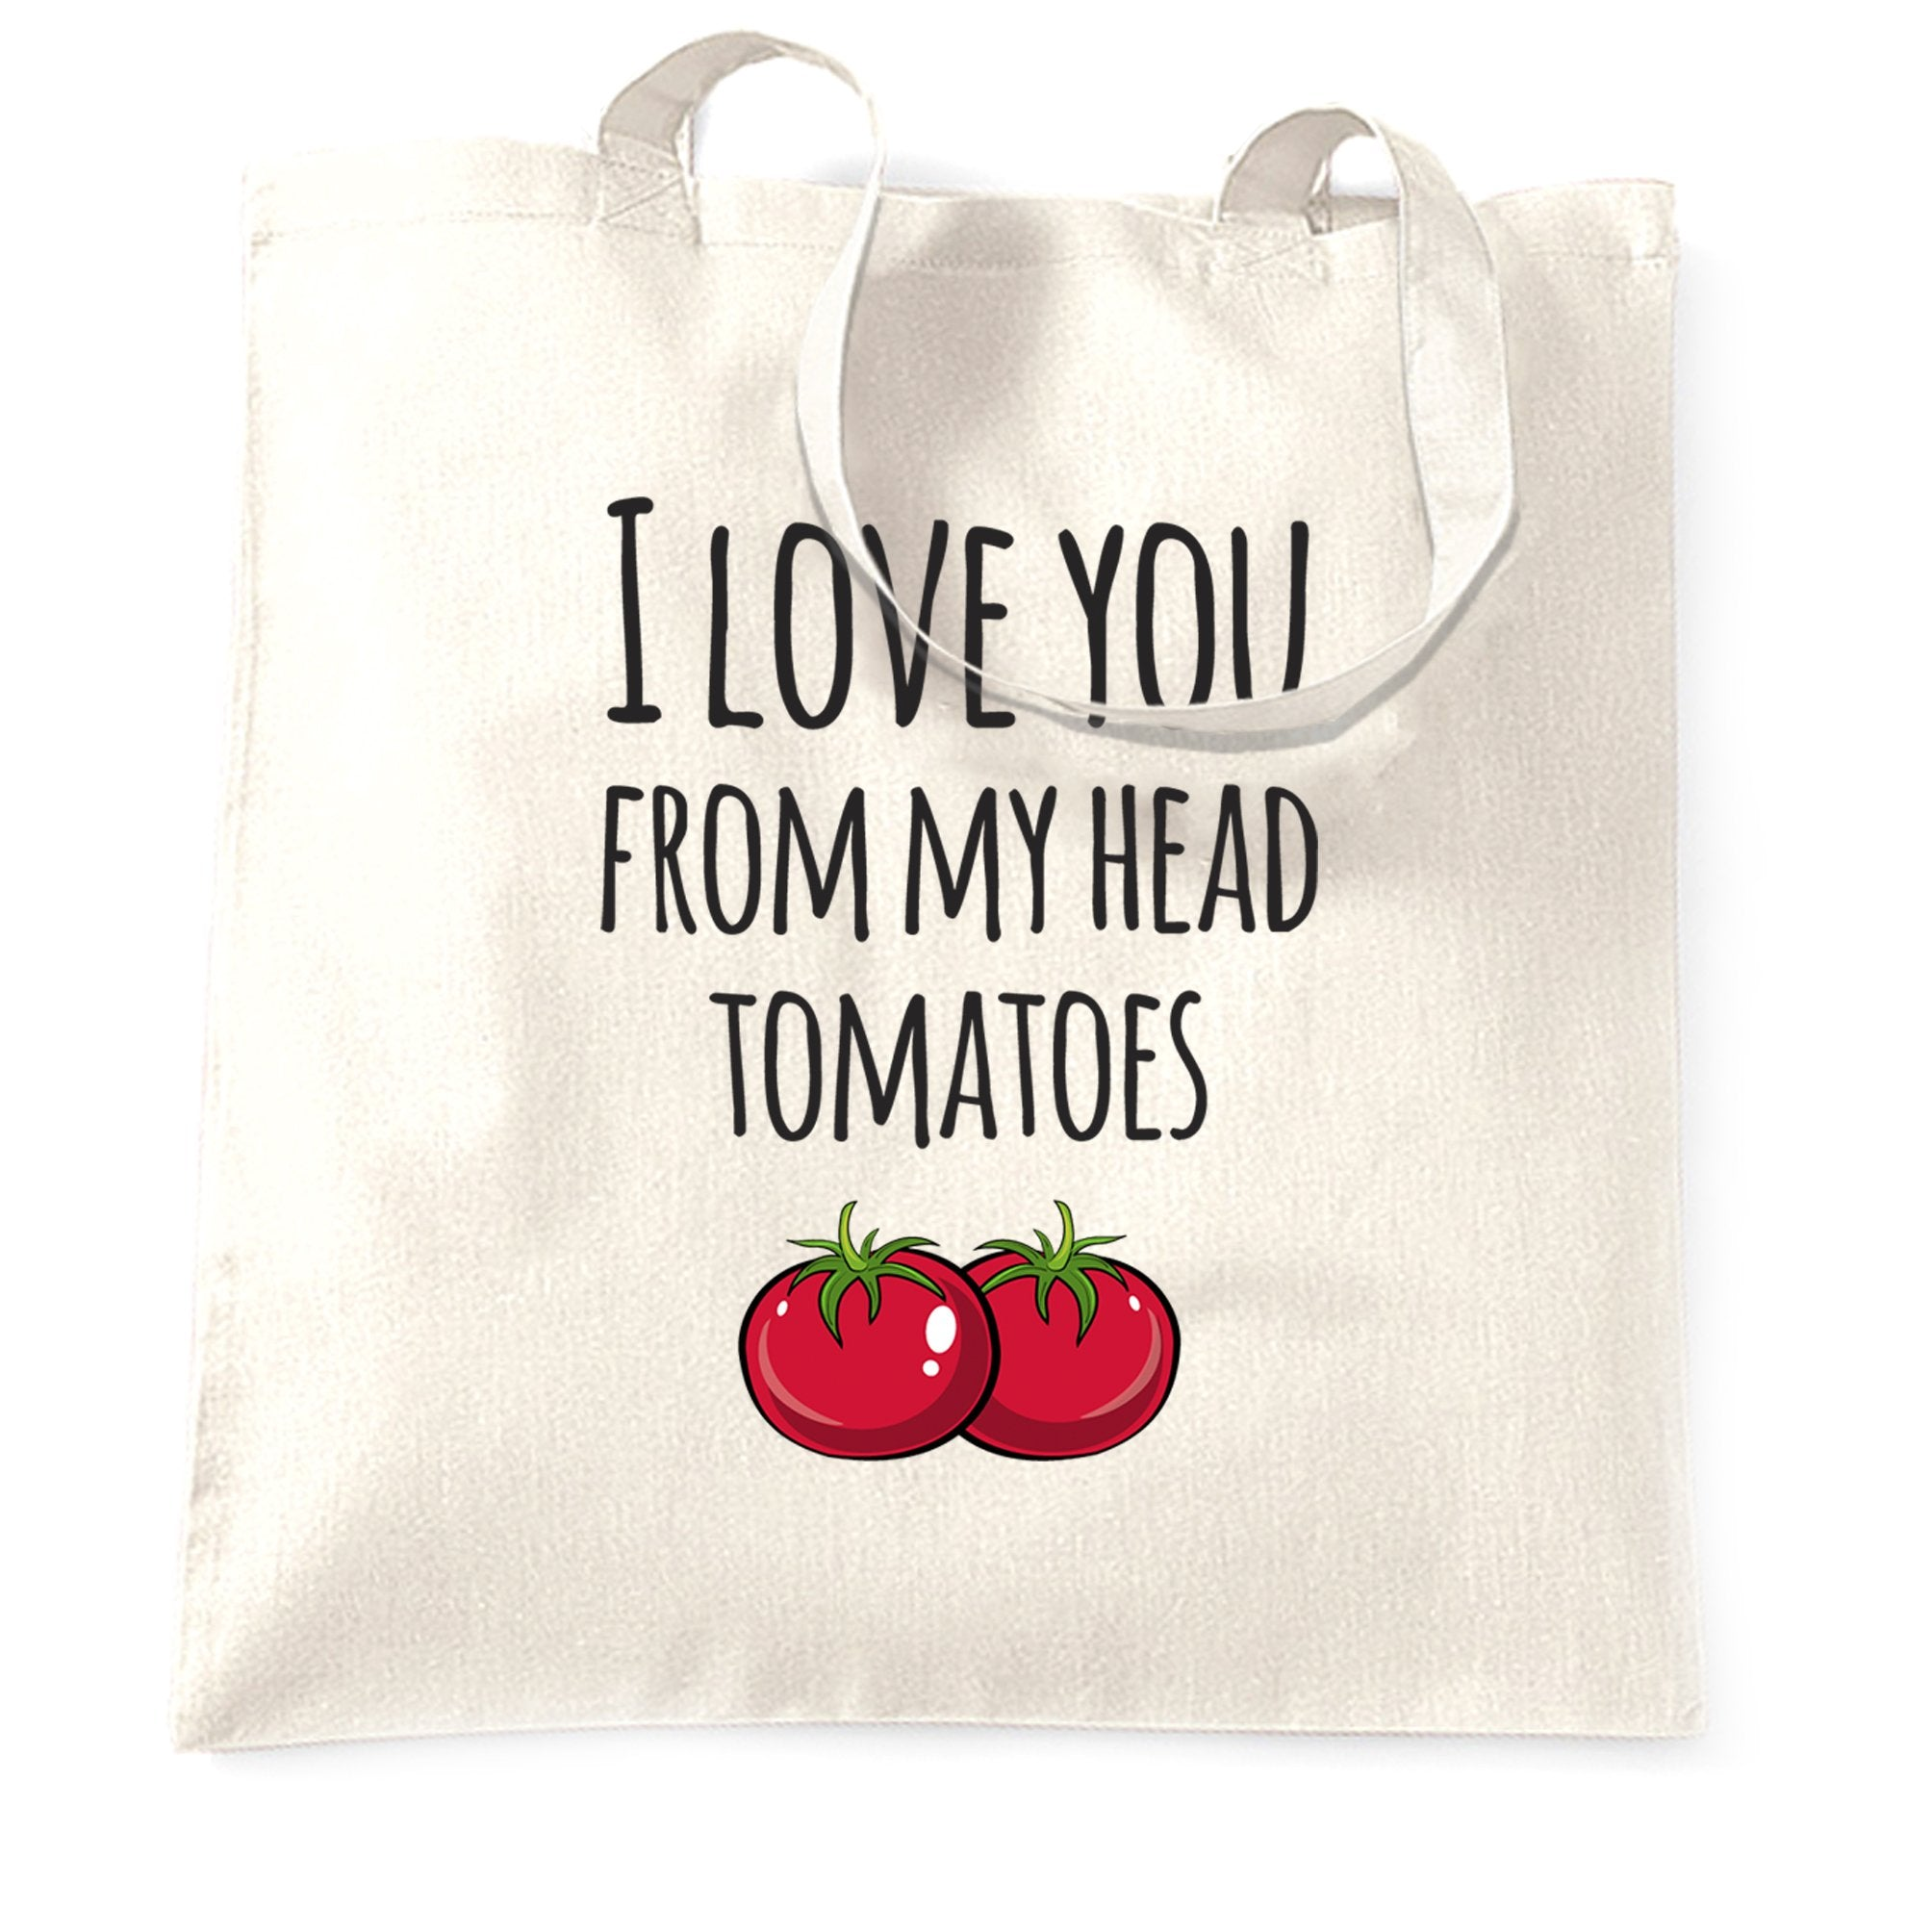 Valentines Pun Tote Bag Love You From My Head Tomatoes